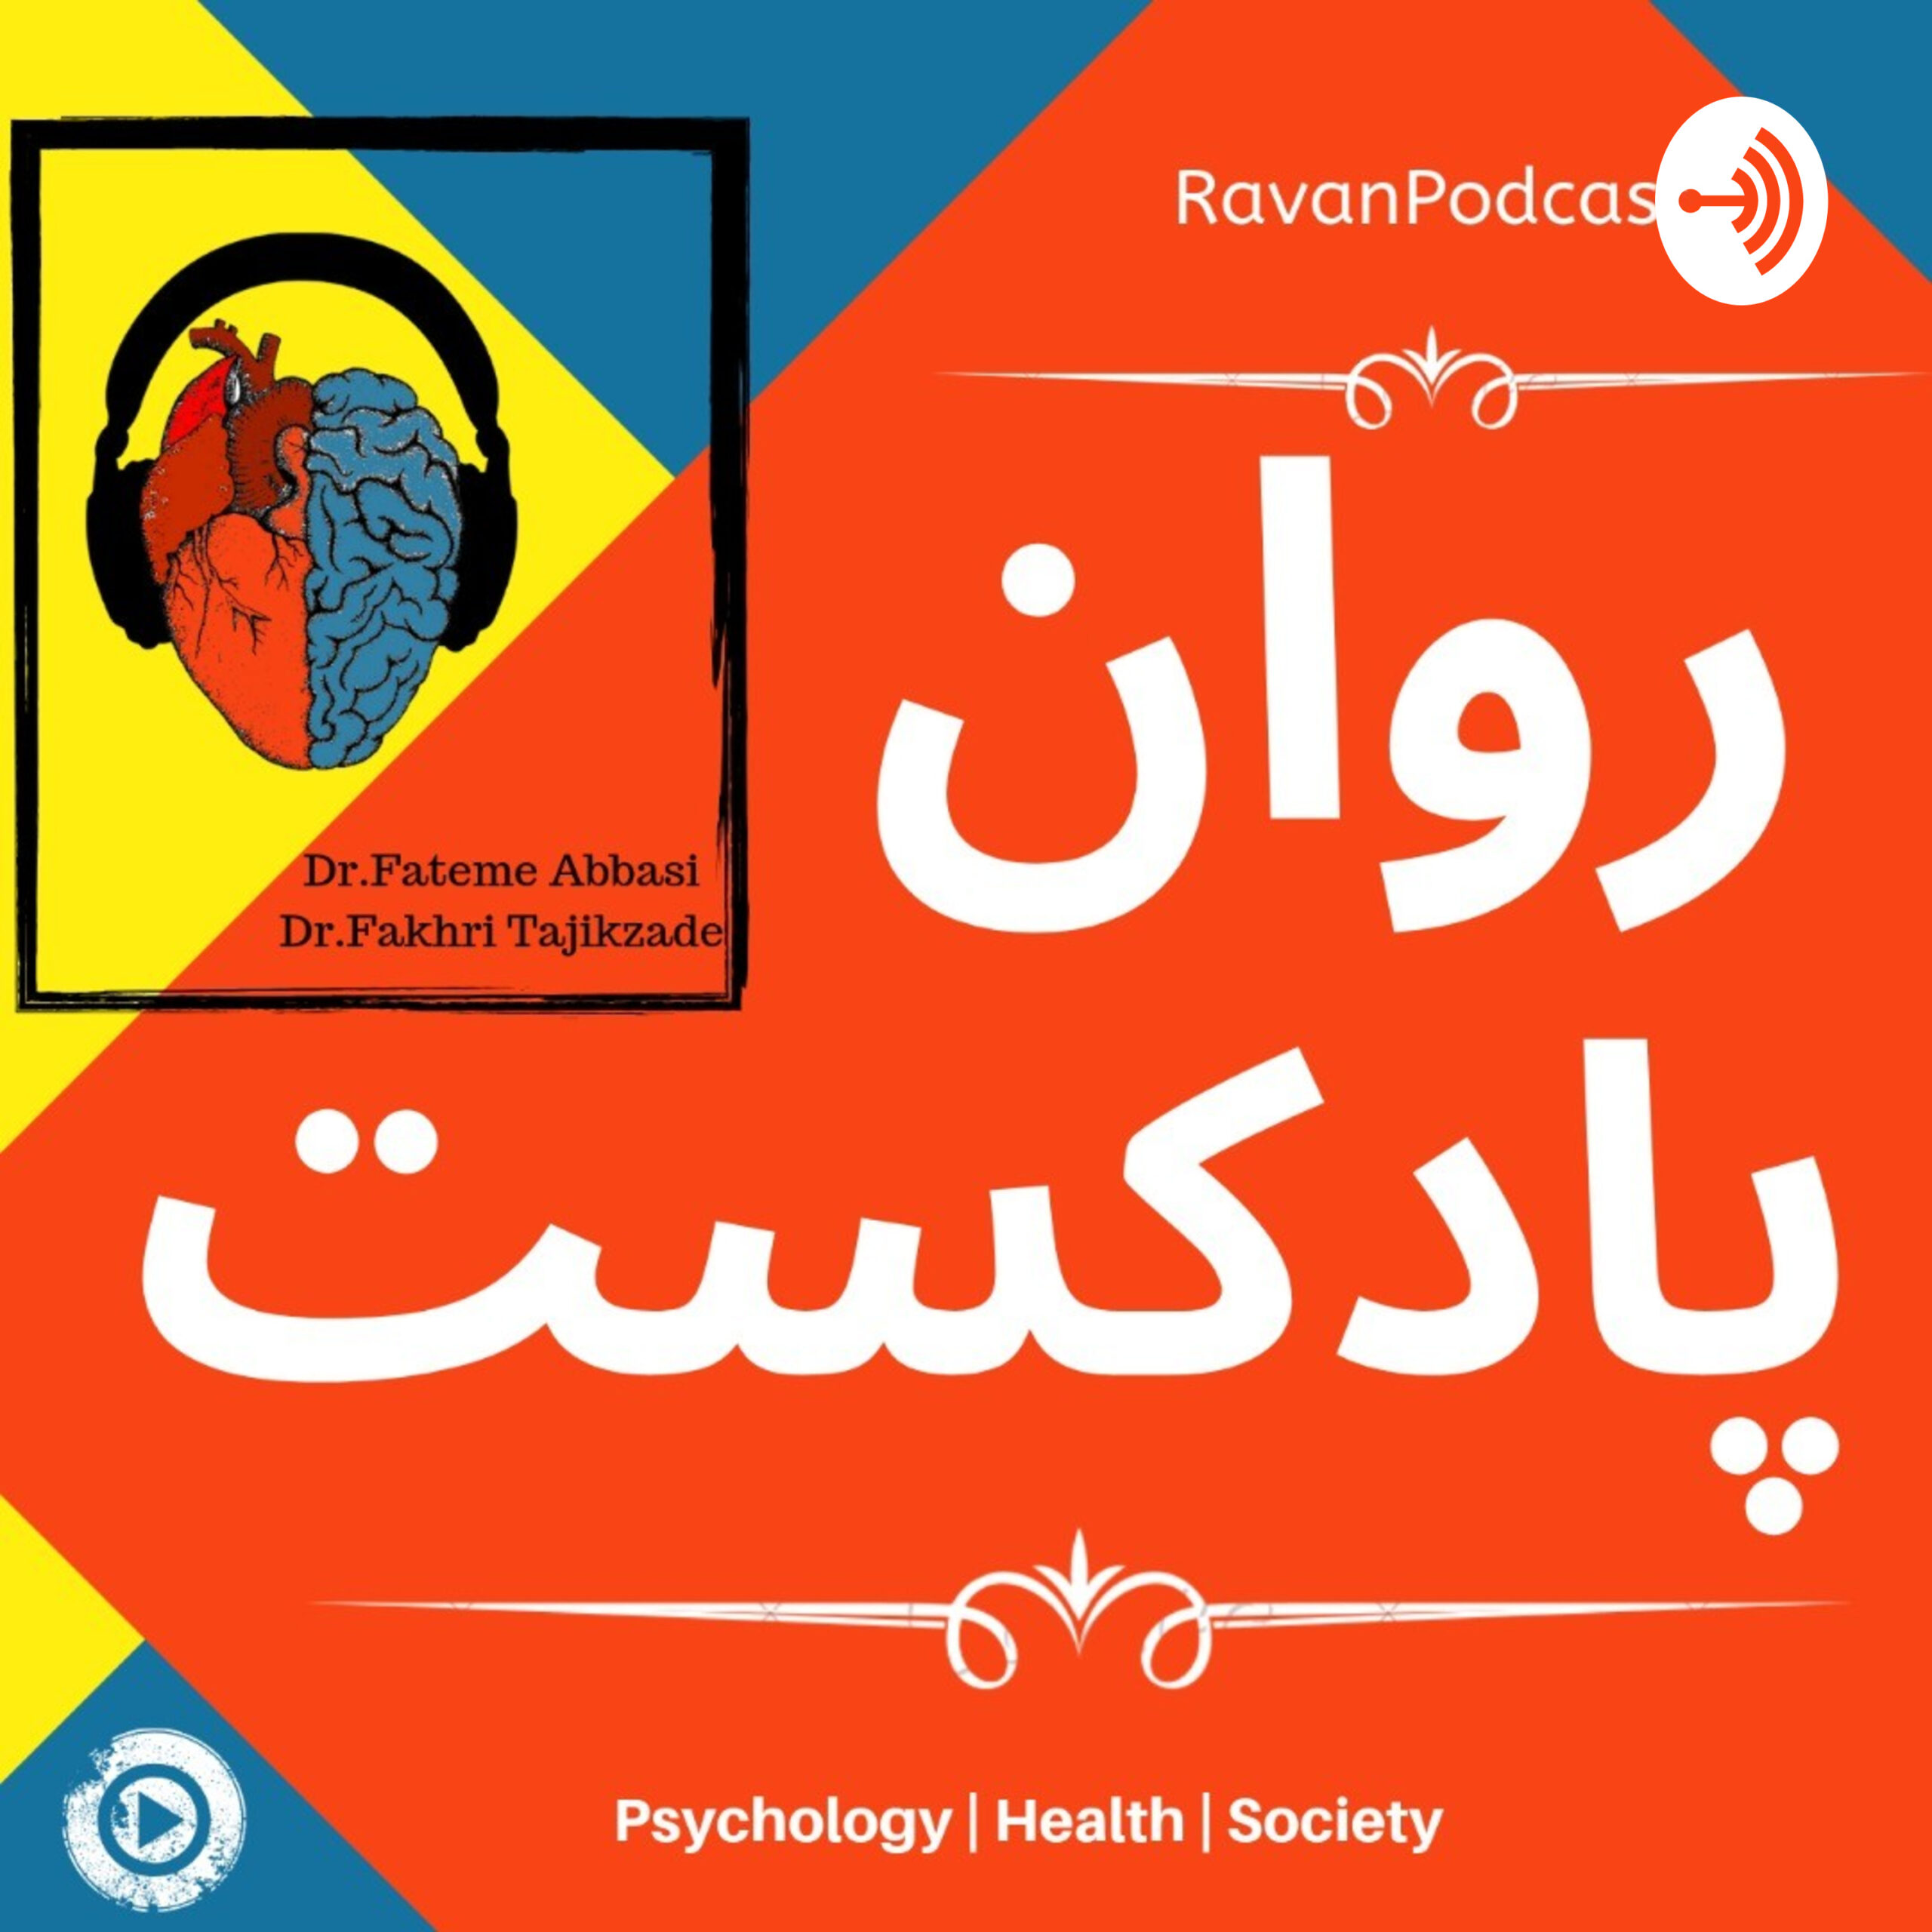 05.ravanpodcast.02love&work.عشق و کار۲